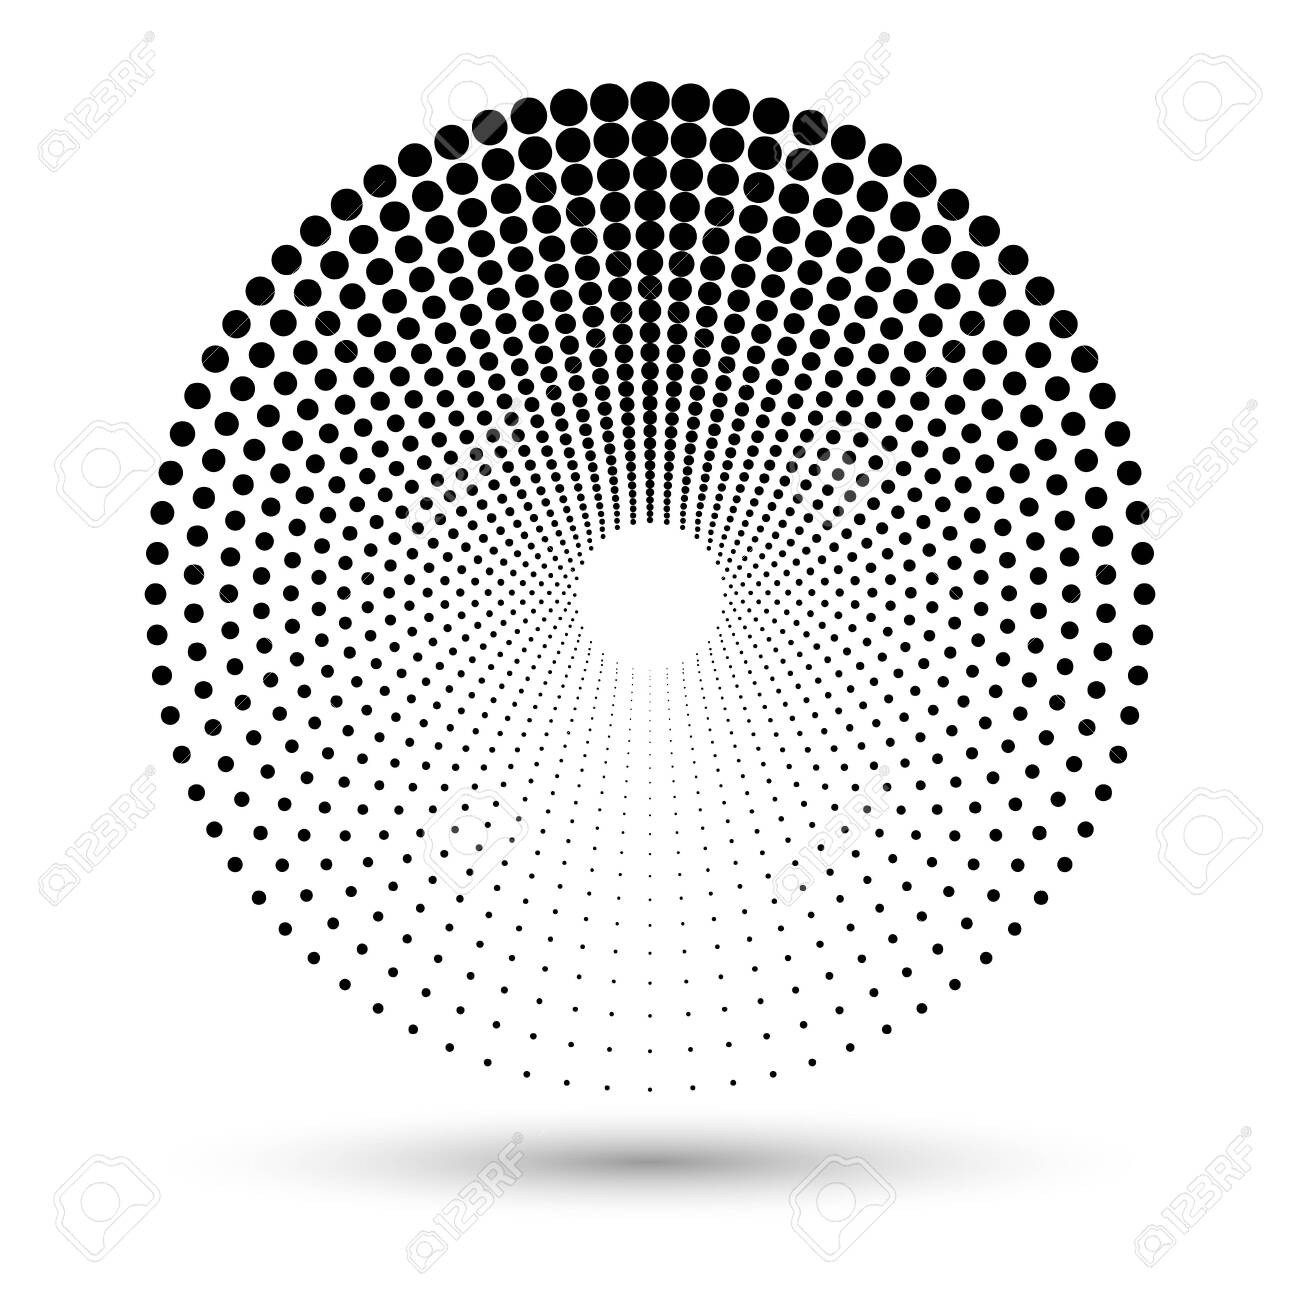 Halftone dots in circle form. Round icon. Vector dotted illustration as design element - 149330697